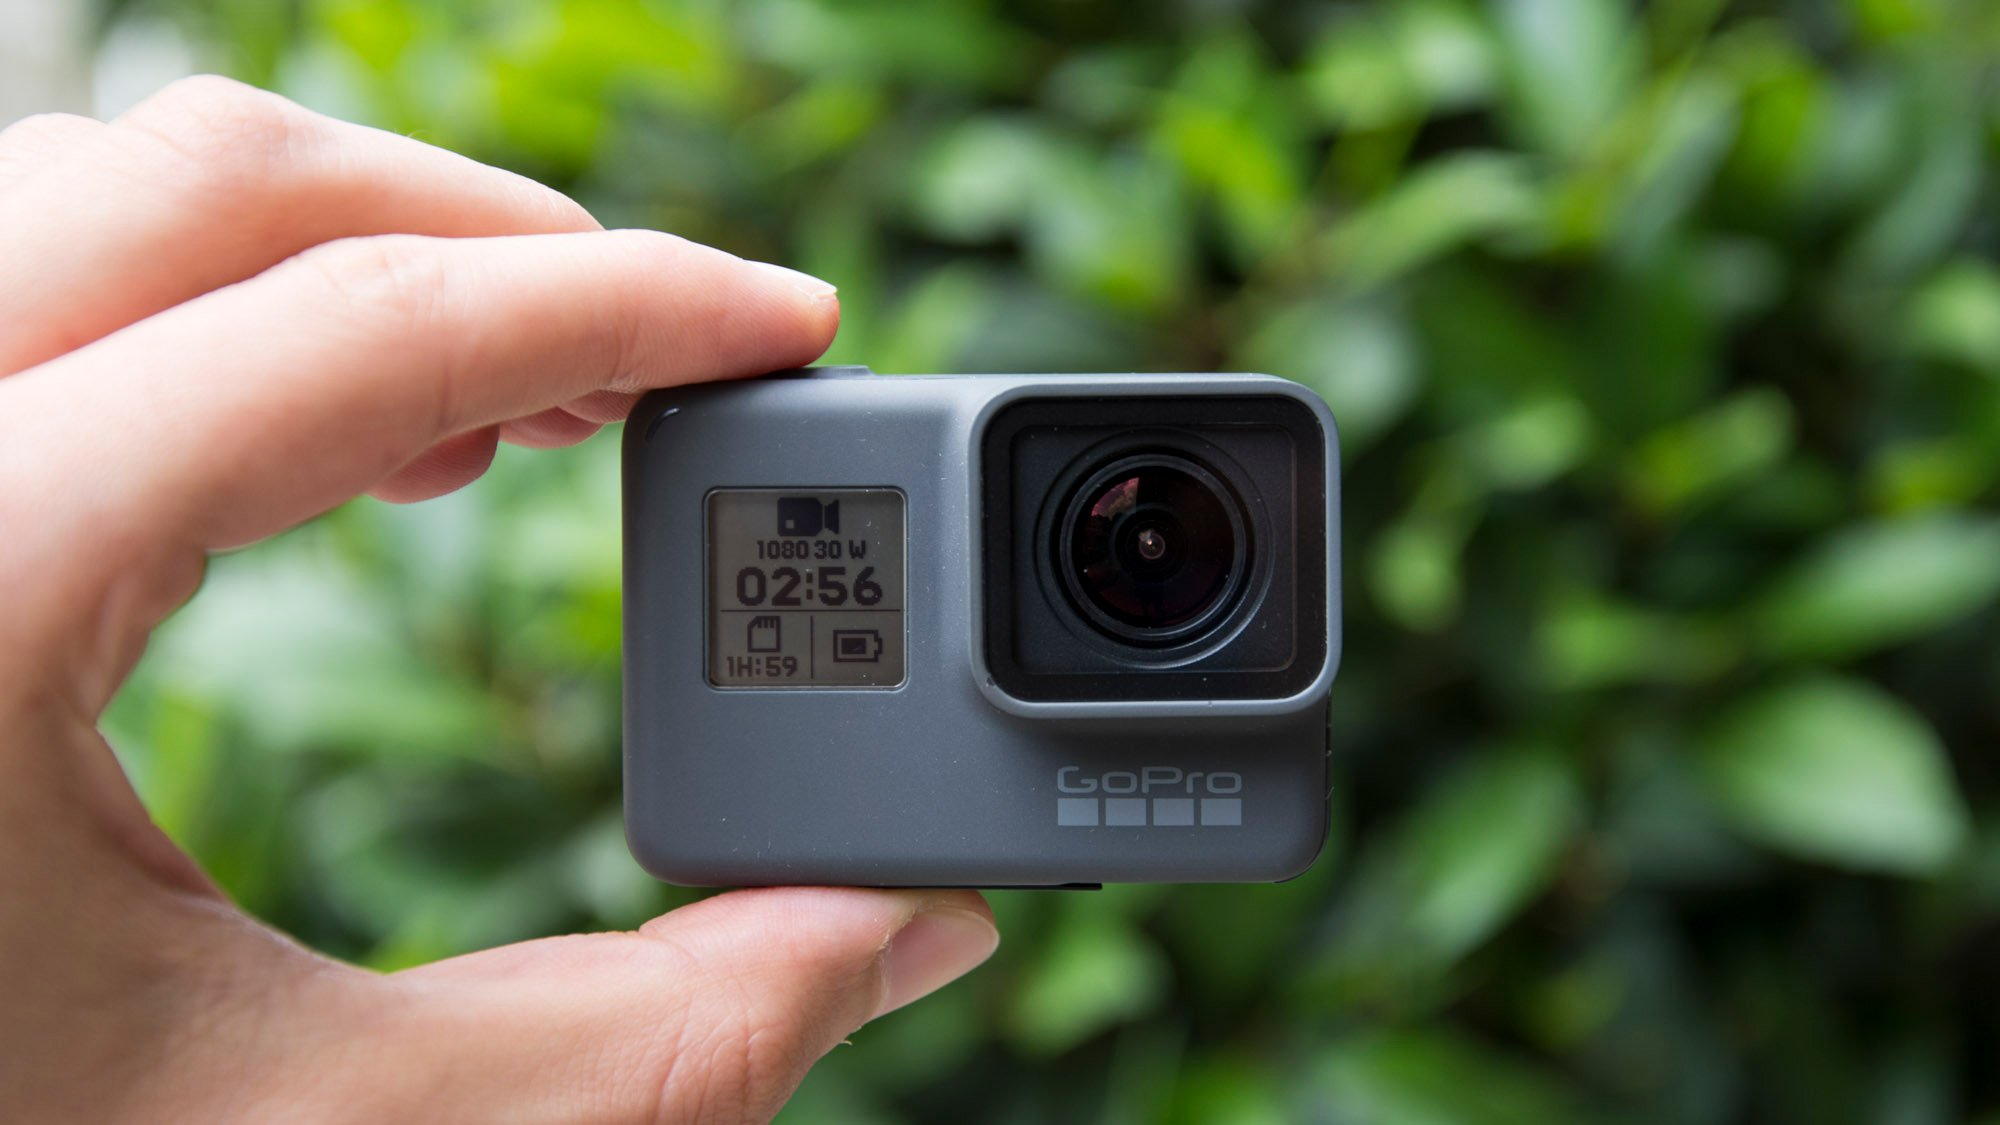 Best Gopro Us 2019 Which Gopro Should You Buy Our Guide To Finding The Best Gopro For You Expert Reviews